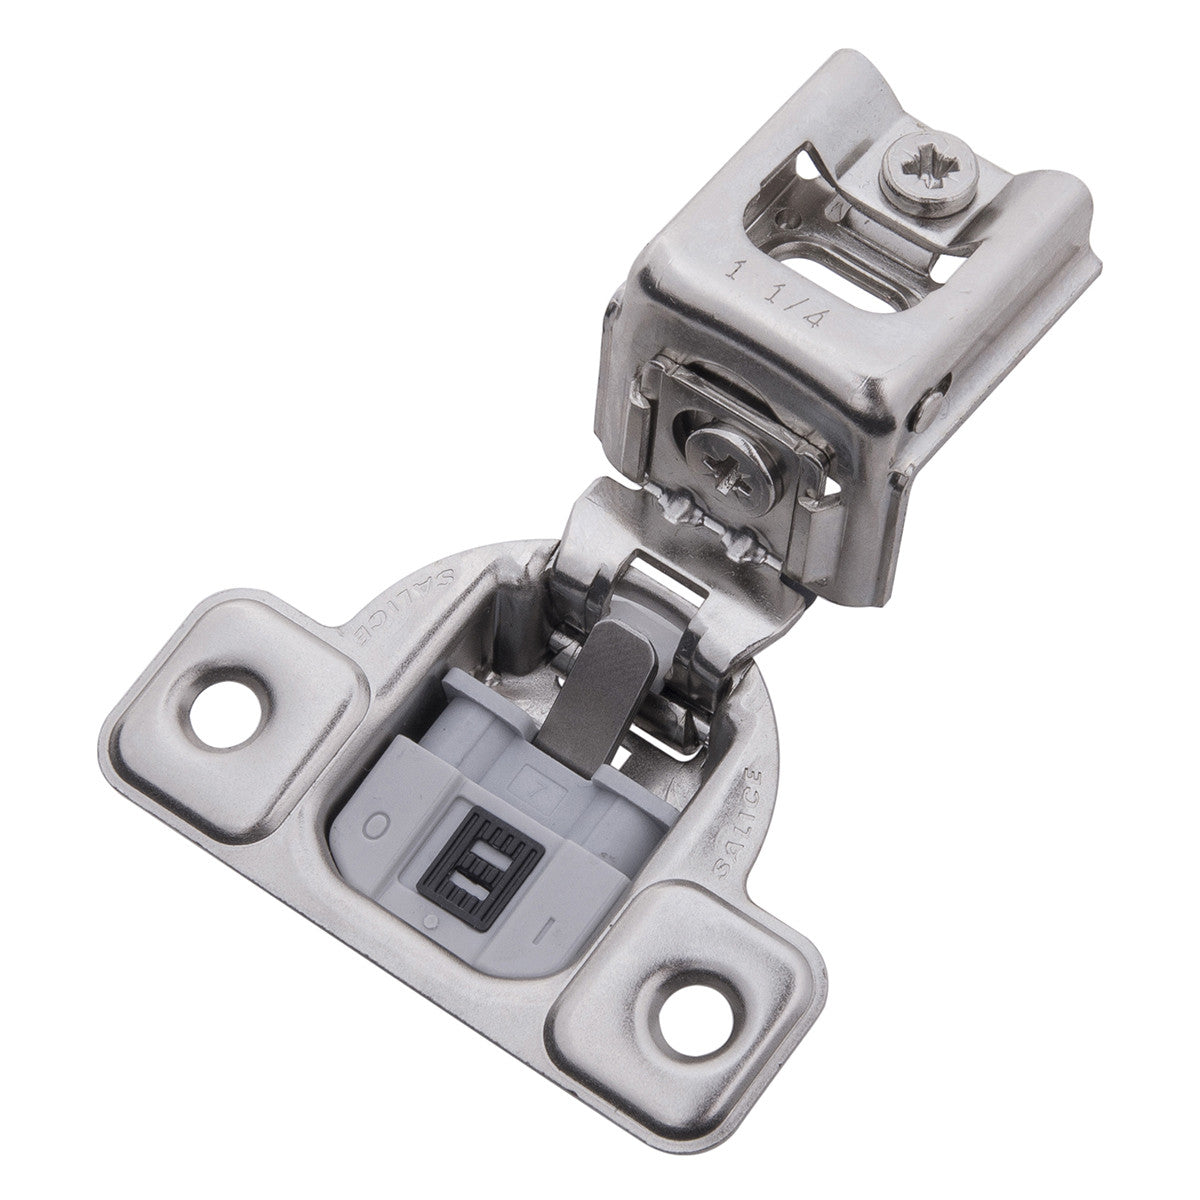 Stupendous Soft Close 1 1 4 In Overlay Face Frame Polished Nickel Hinge Download Free Architecture Designs Itiscsunscenecom